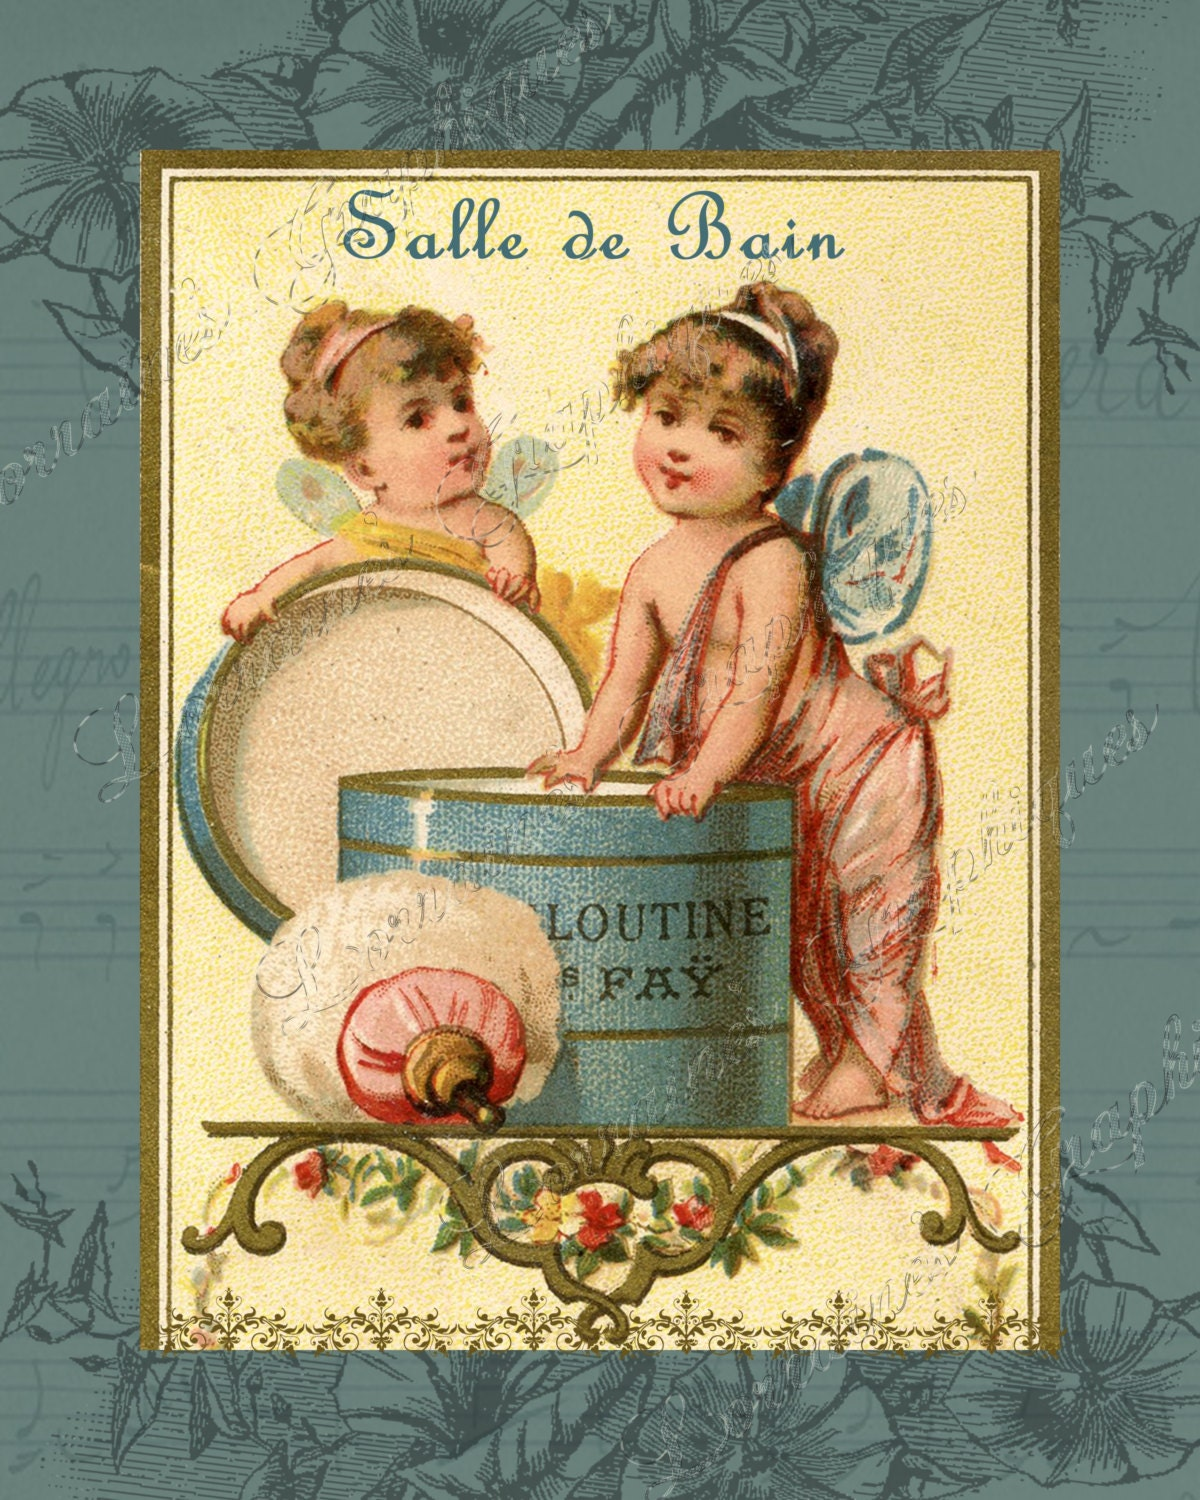 Salle De Bain French Inspired Vintage Bathroom Fine Art Photographic Print